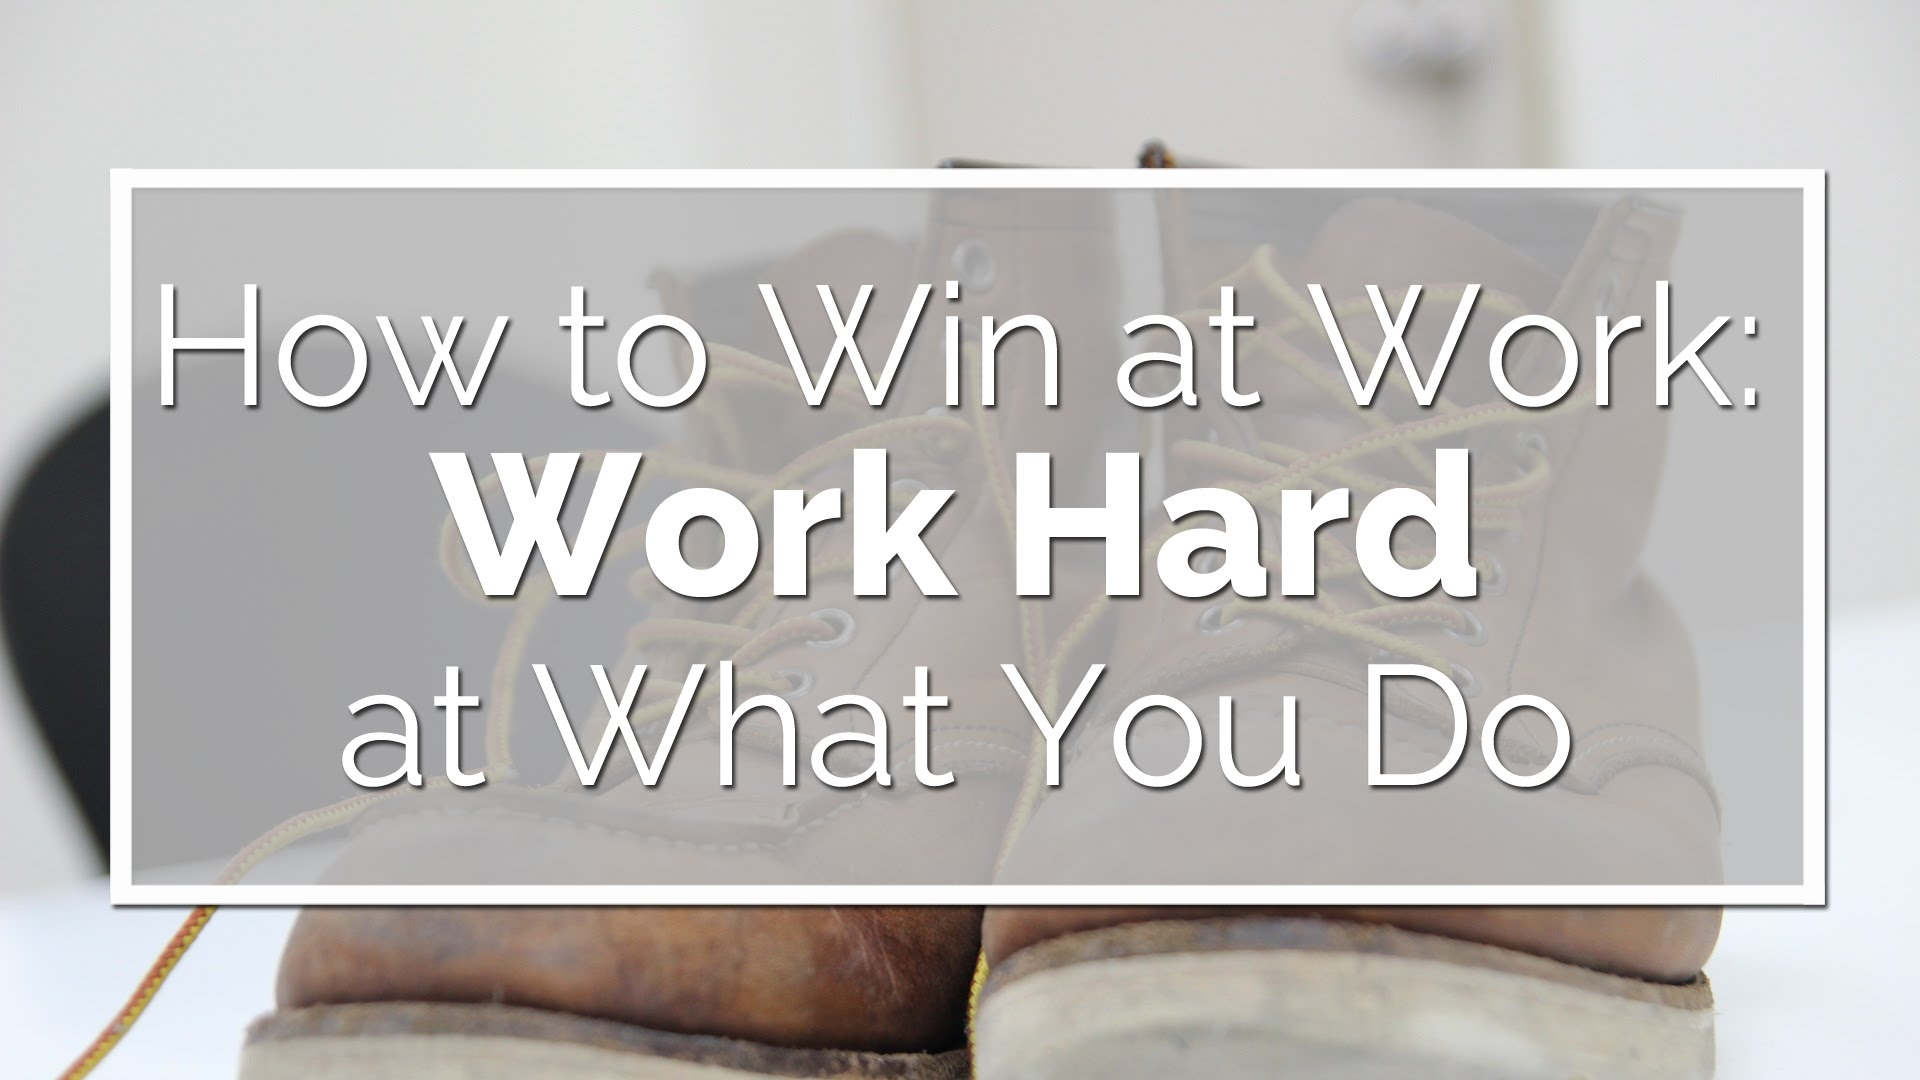 Work Hard at What You Do